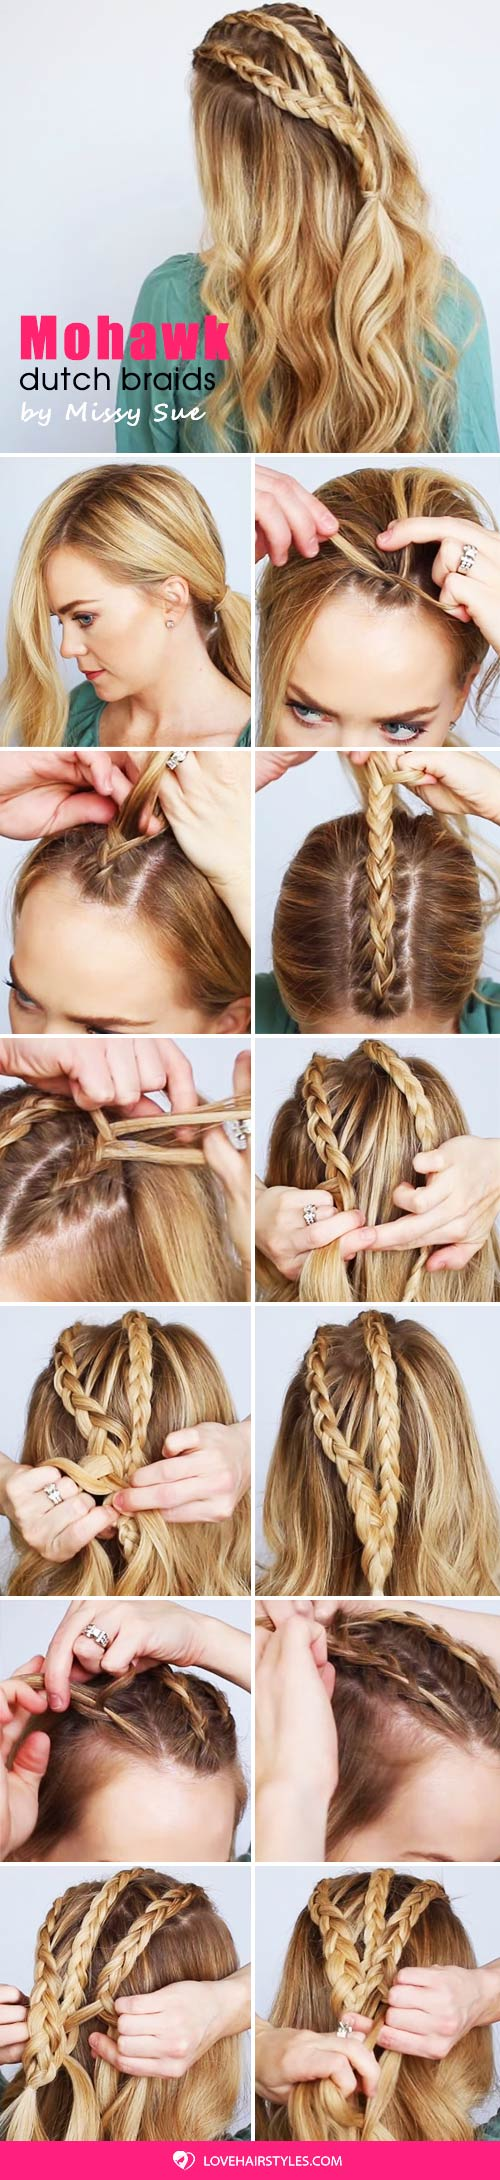 Half Up Mohawk Dutch Braids #braids #mohawk #hairtutorial